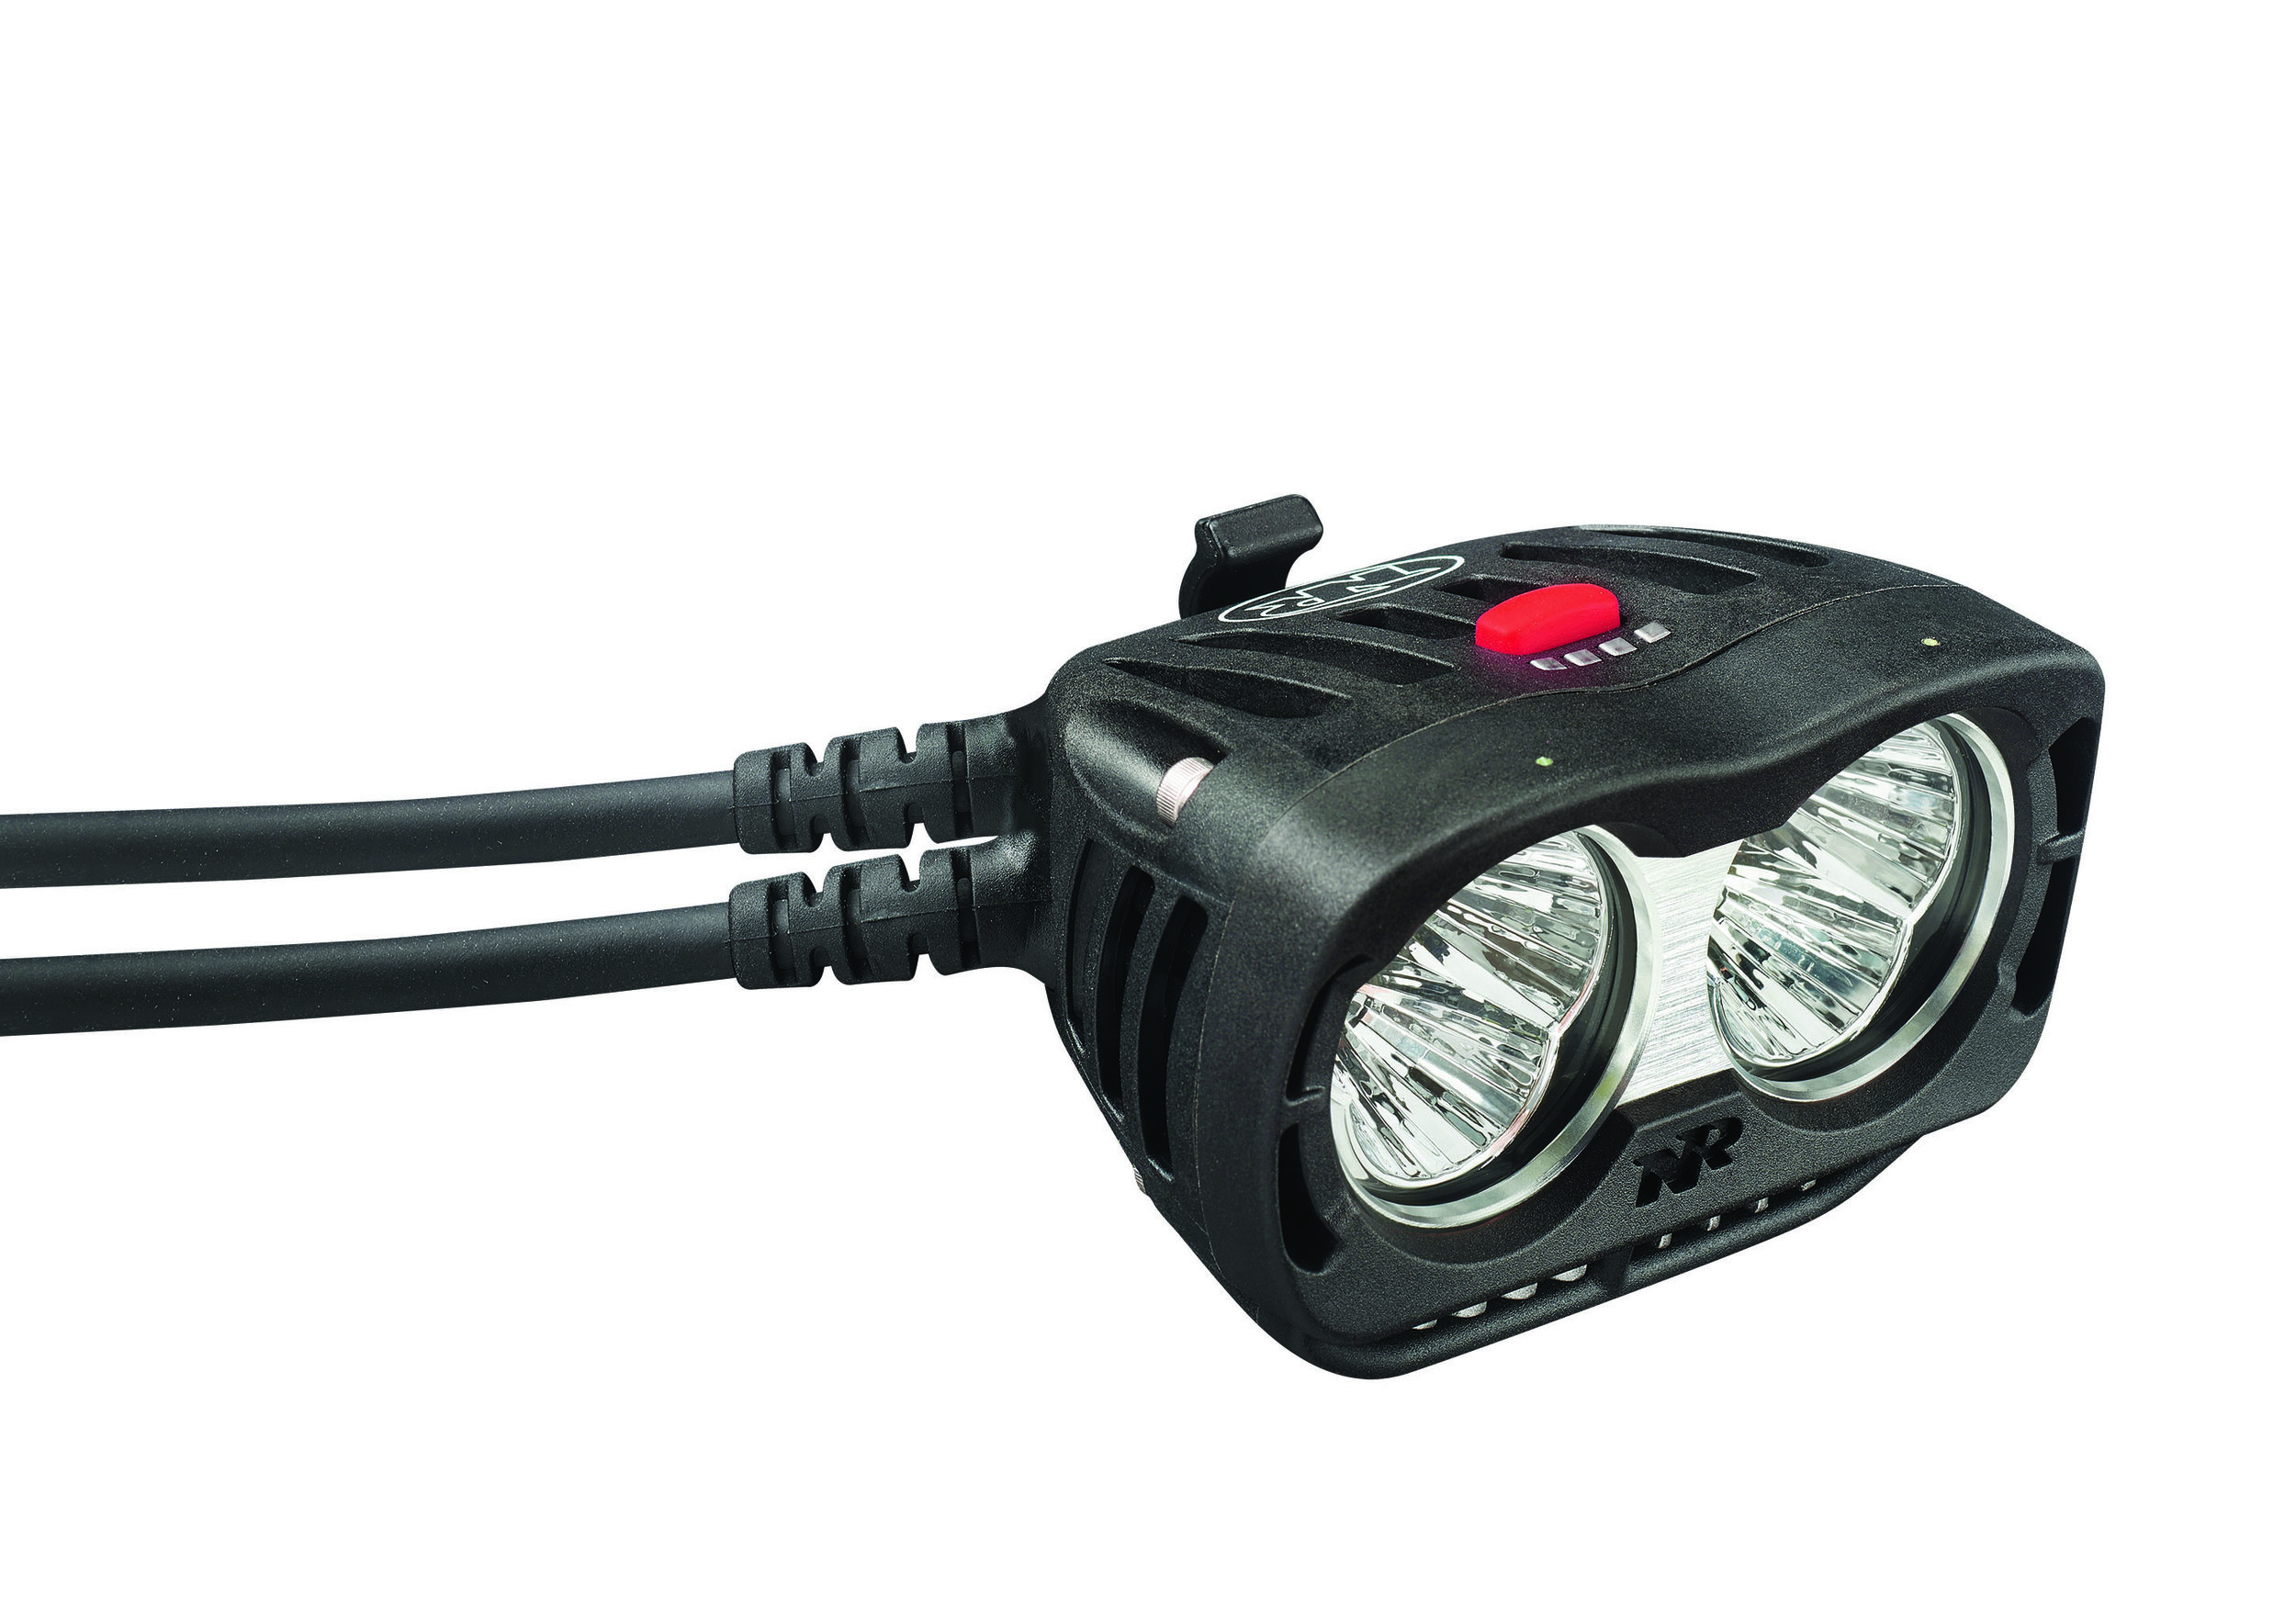 Pro 4200 Enduro Remote - SGD $690 | Specifications: Here